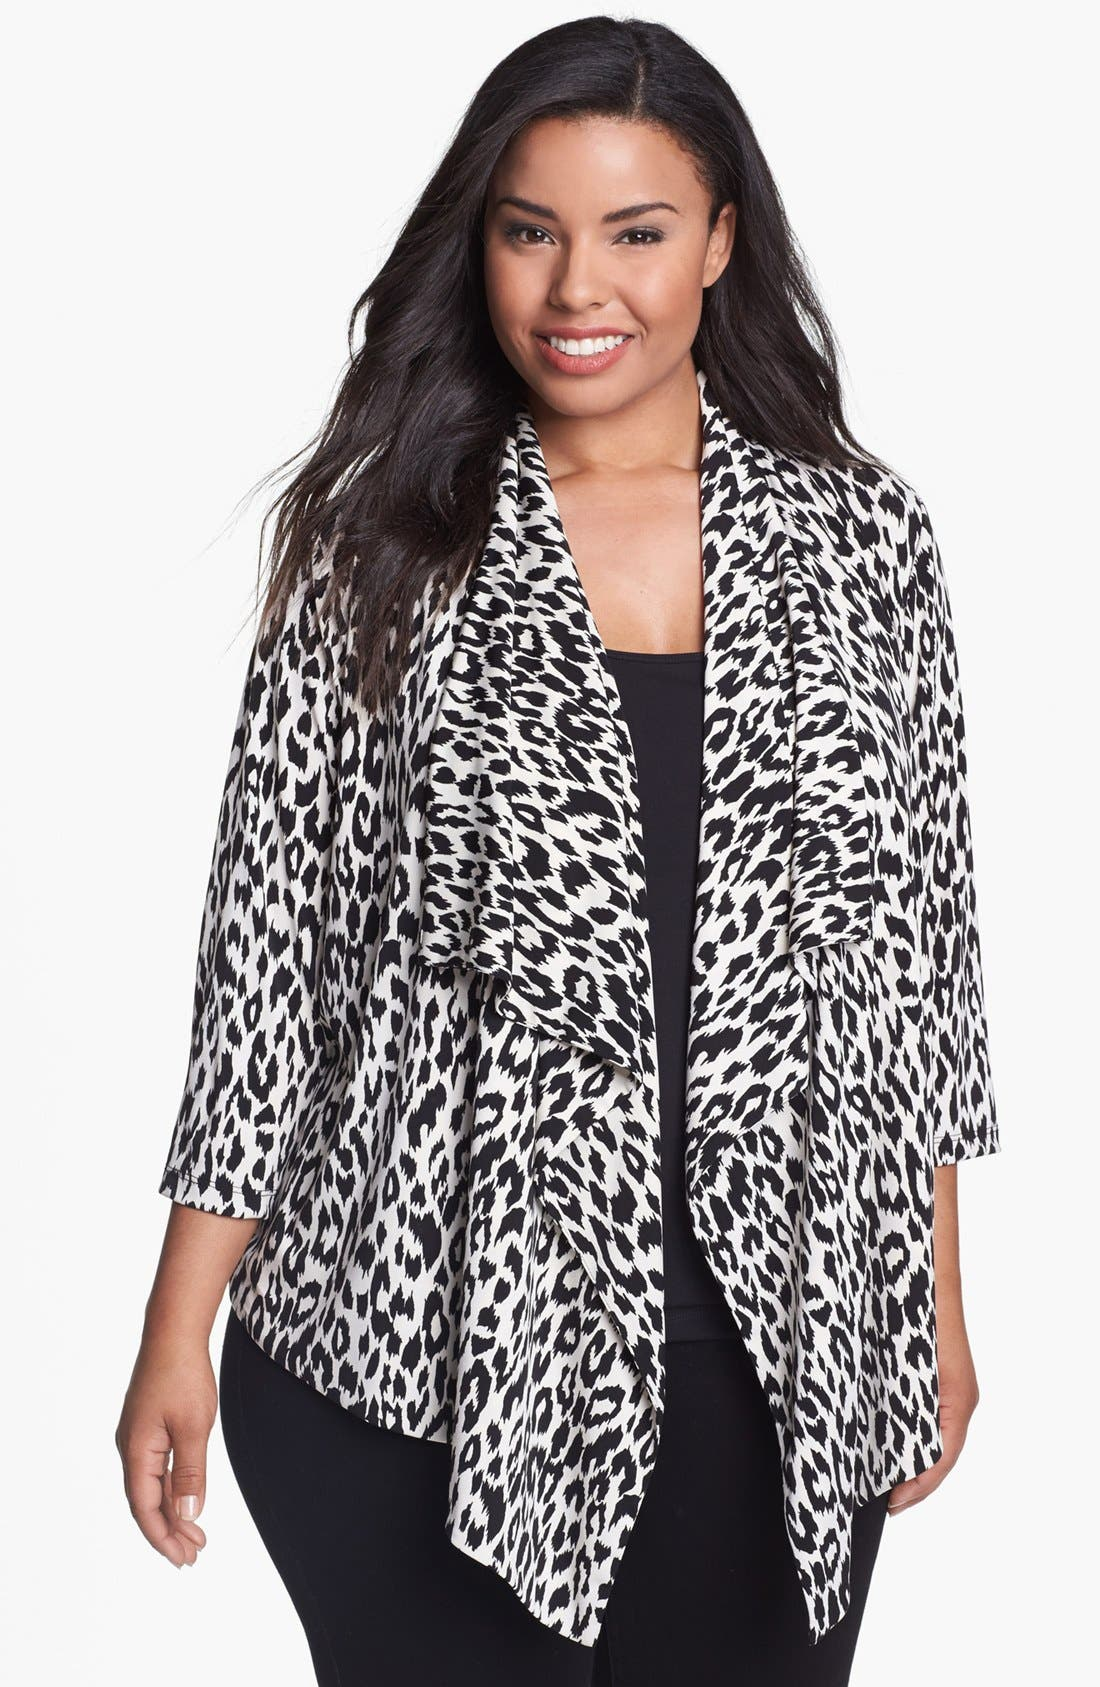 Alternate Image 1 Selected - Karen Kane Leopard Print Drape Jacket (Plus Size)